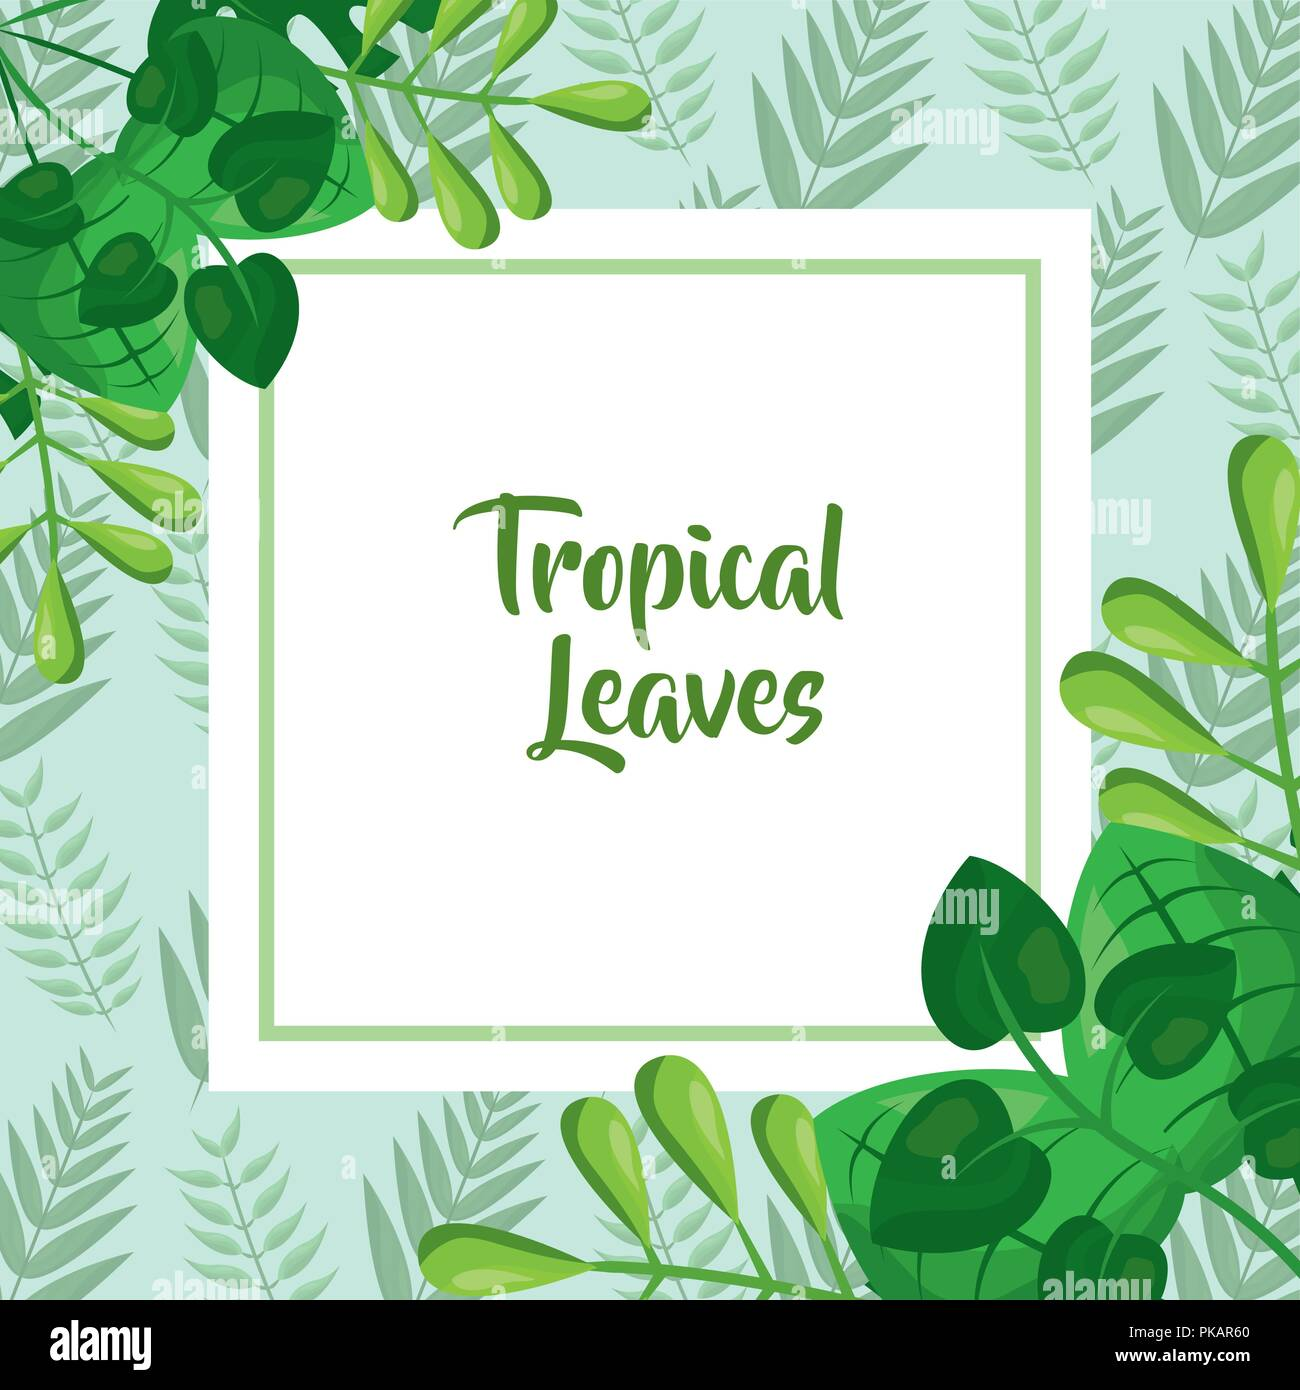 Tropical Leaves Template Fashion Green Design Vector Illustration Stock Vector Image Art Alamy Or plants and lighting effect on white paper background. https www alamy com tropical leaves template fashion green design vector illustration image218440600 html